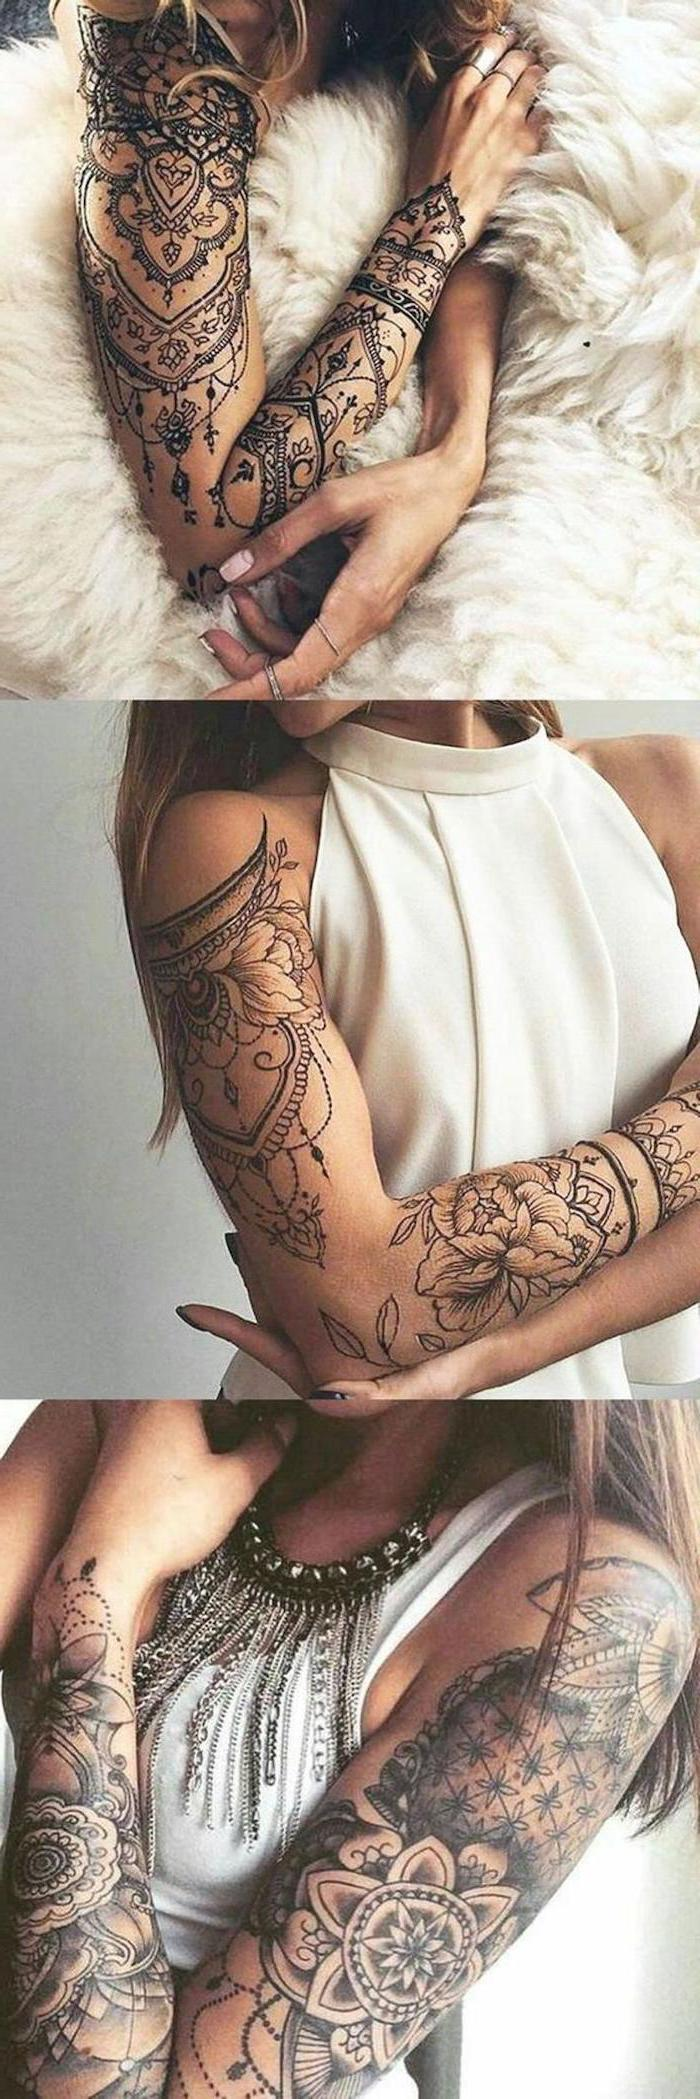 sleeve tattoos, white top, side by side photos, mandala tattoo meaning